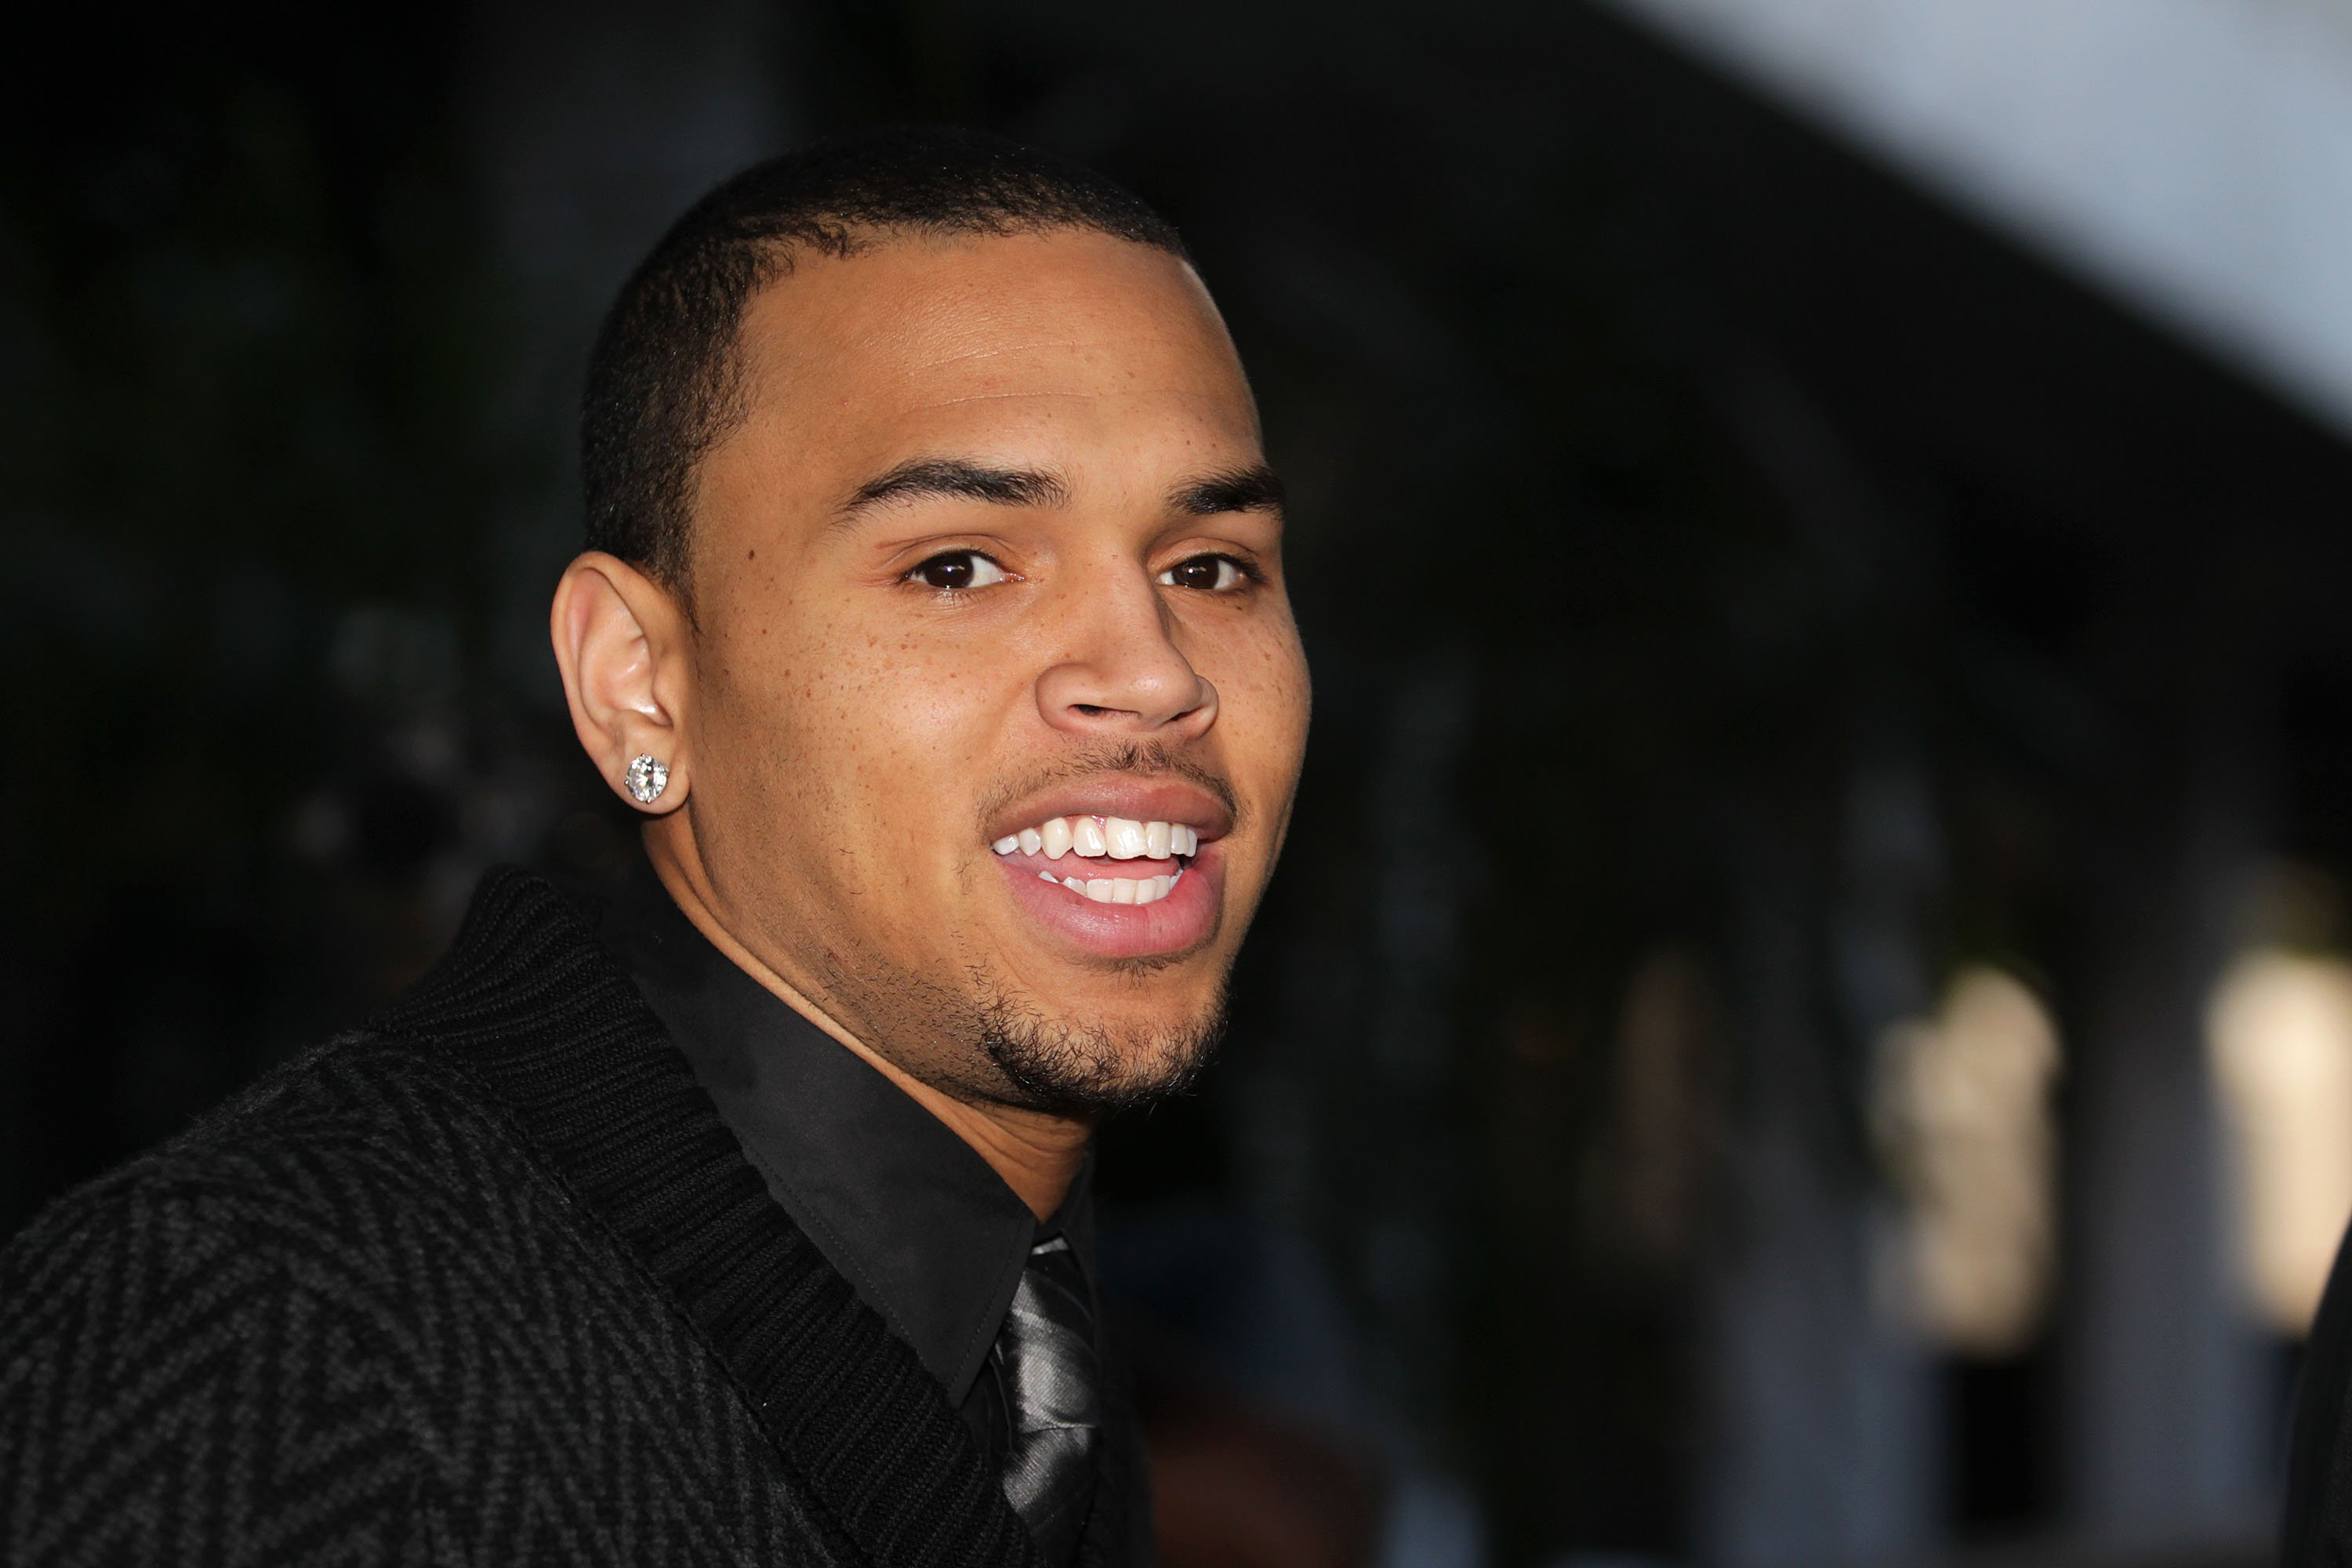 Chris Brown on January 28, 2011 in Los Angeles, California. | Photo: Getty Images